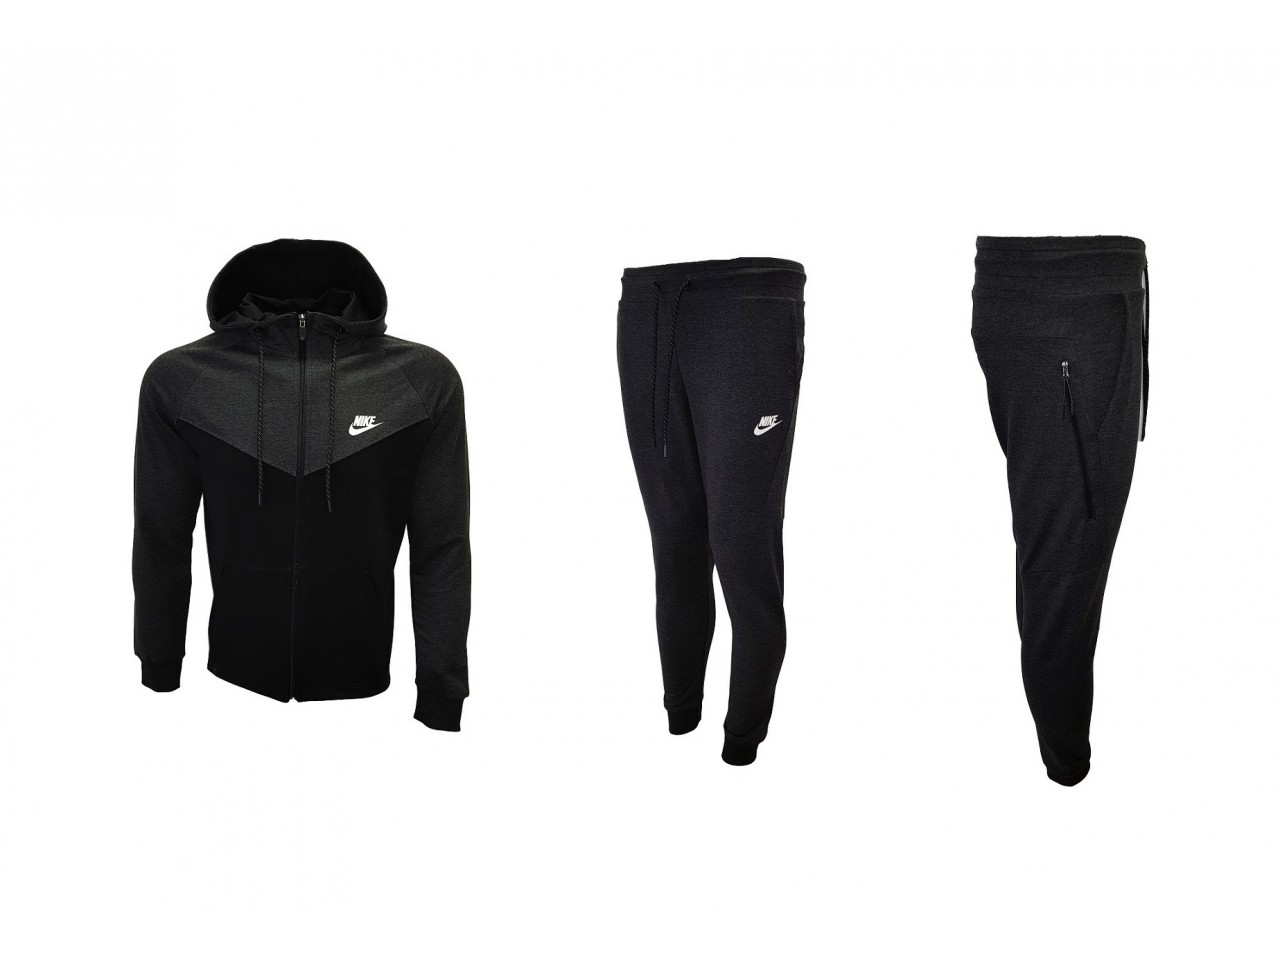 Nike Tracksuit Top Model Black & Dark Grey